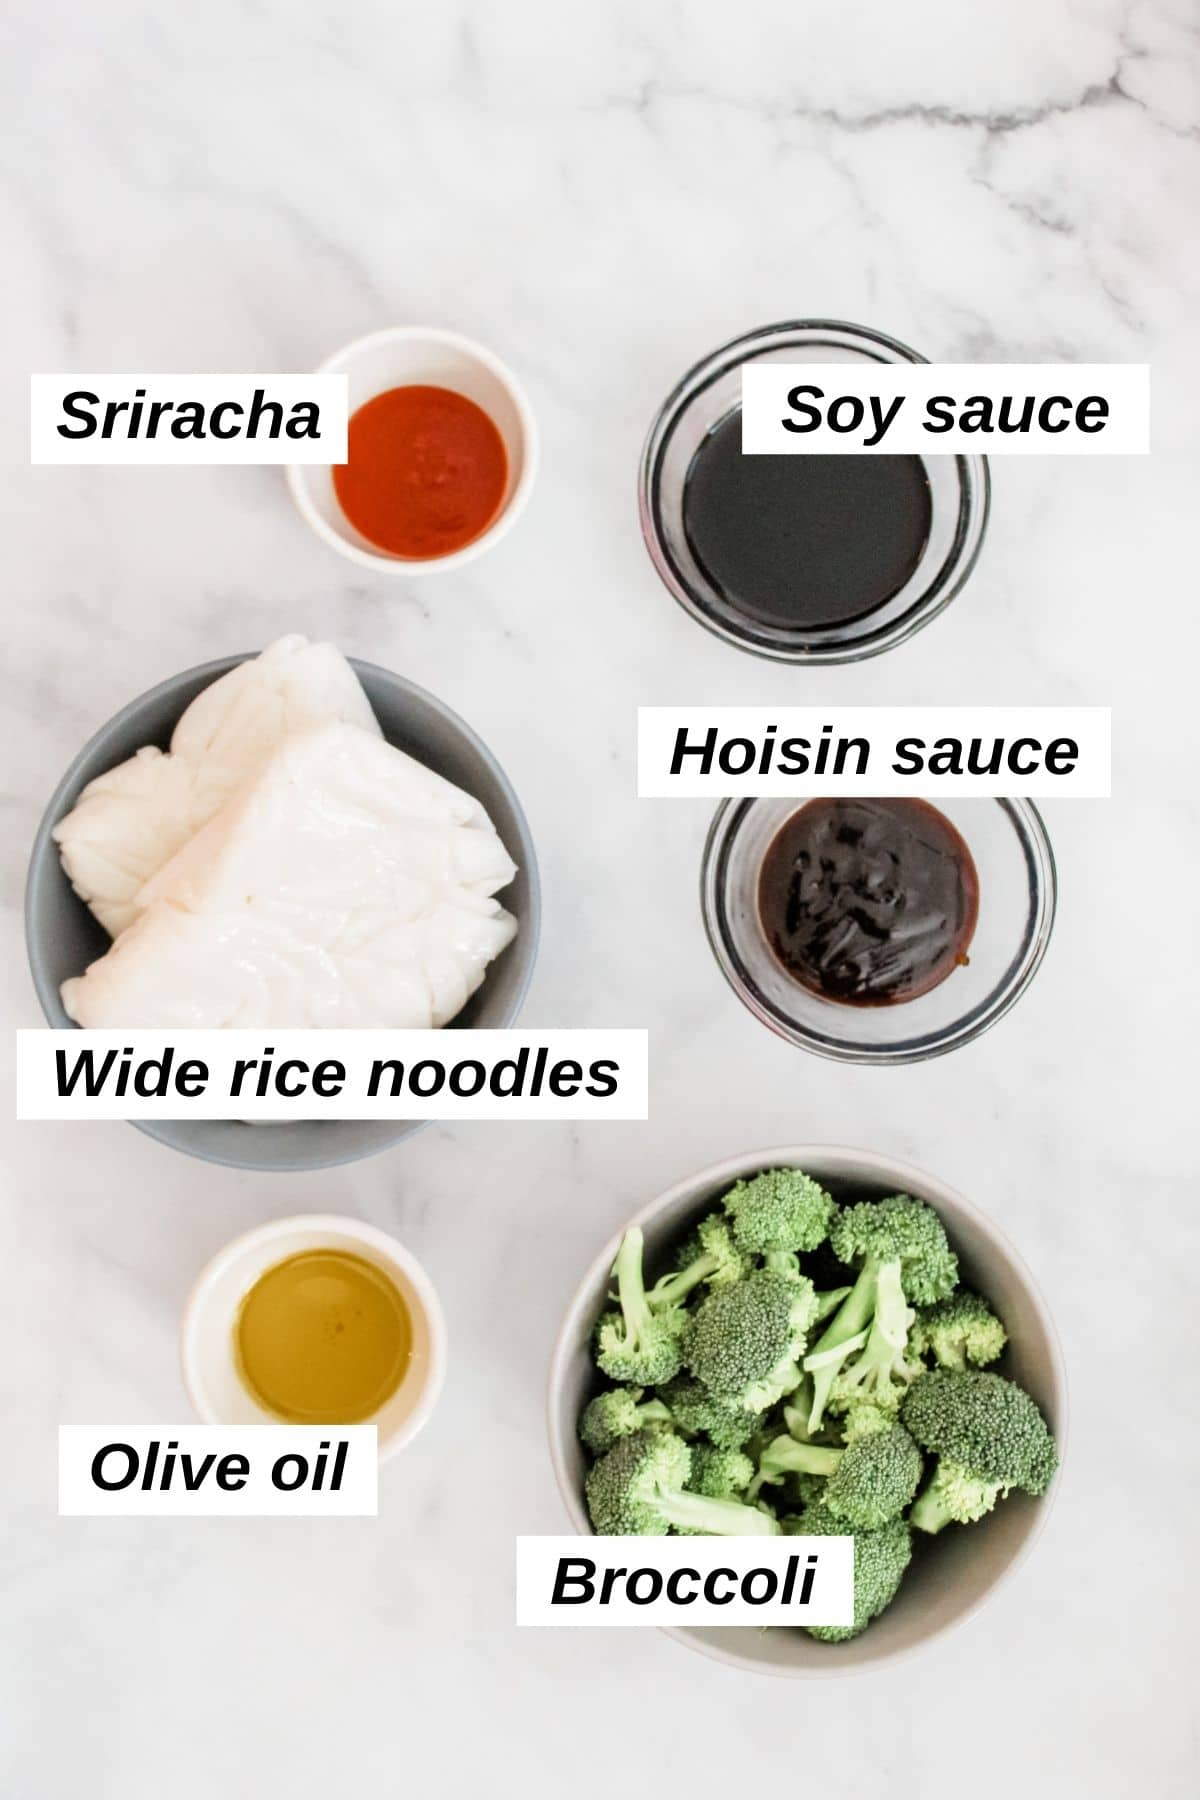 individual ingredients for vegan pad see ew, including broccoli, wide rice noodles, oil, and sauces